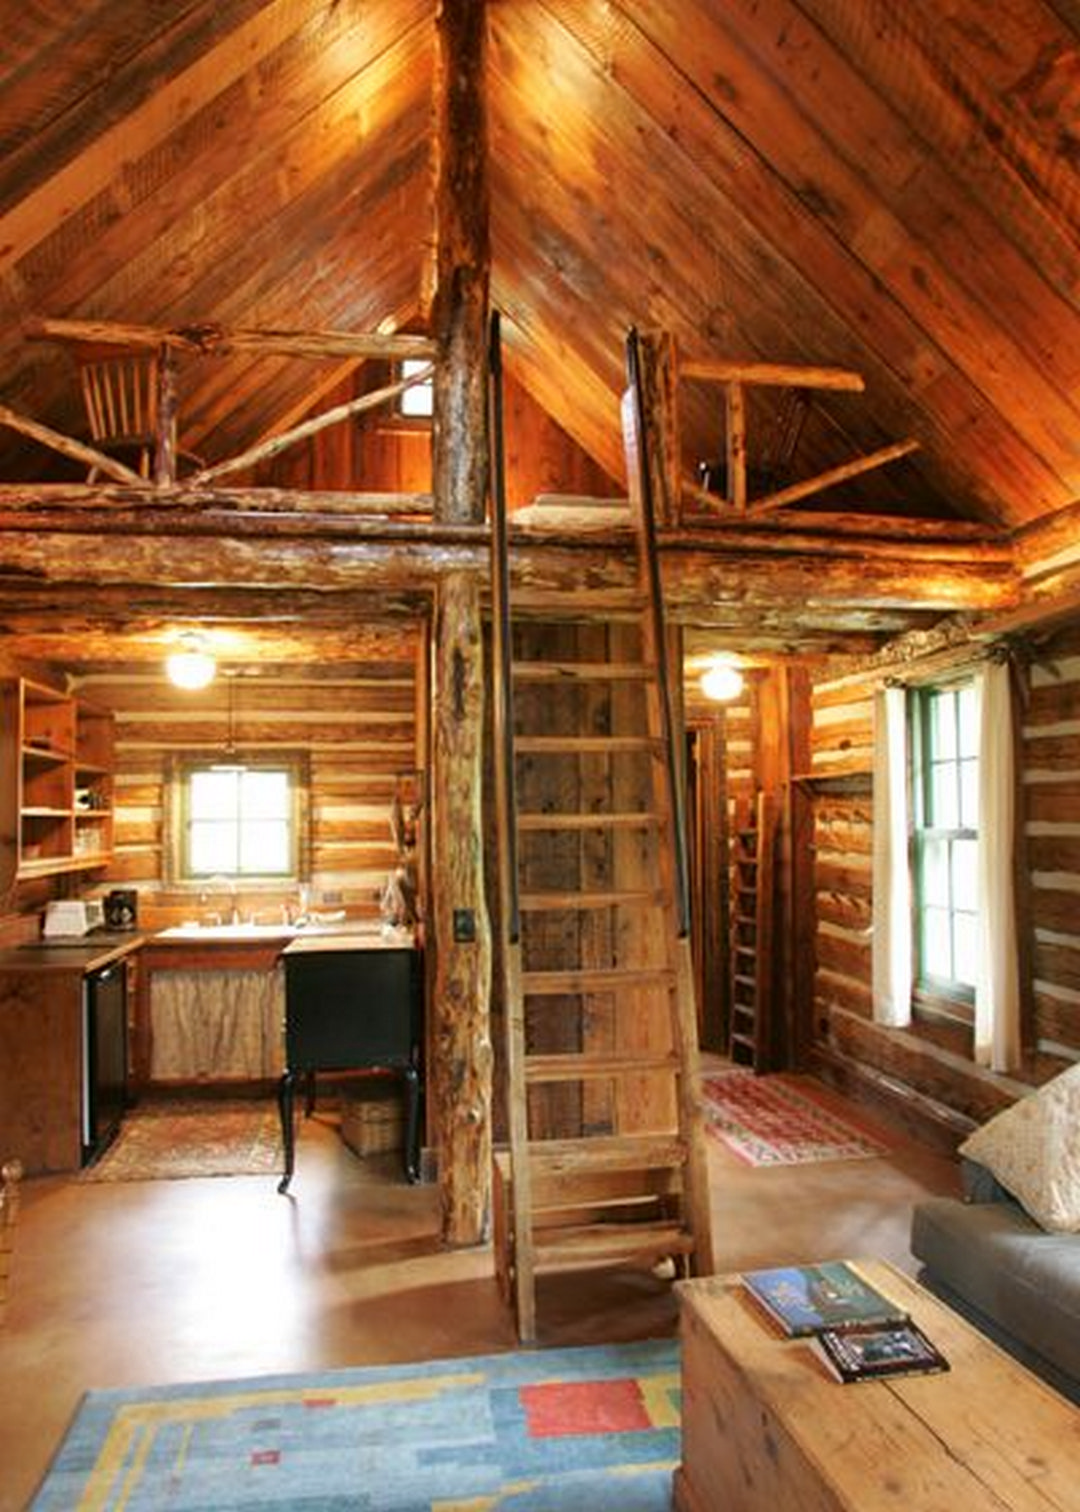 49 gorgeous rustic cabin interior ideas cabin interiors for Rustic lodge